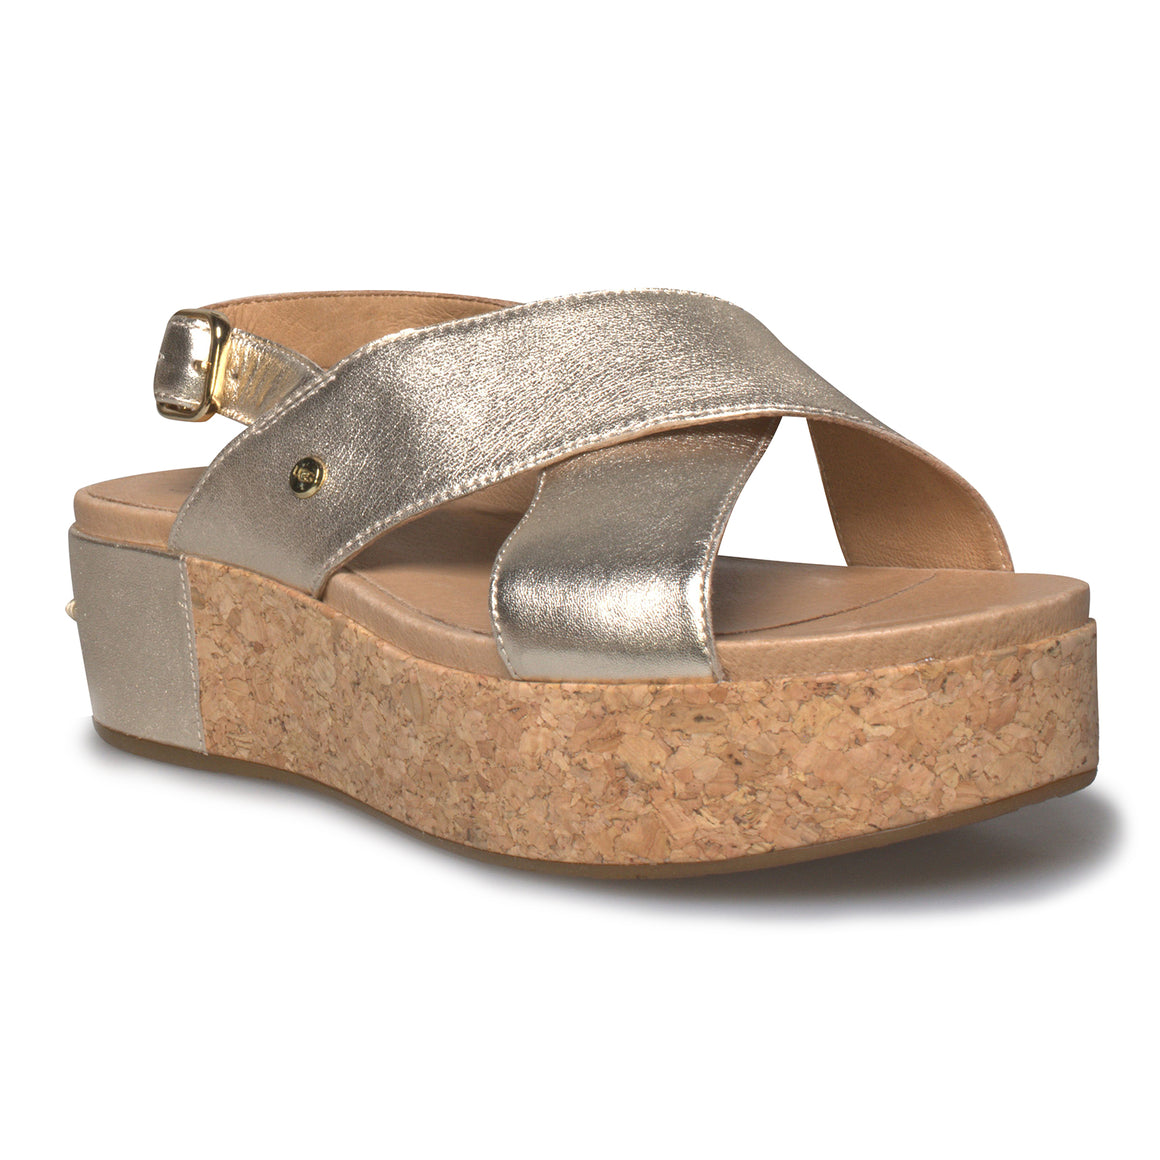 UGG Shoshana Gold Sandals - Women's